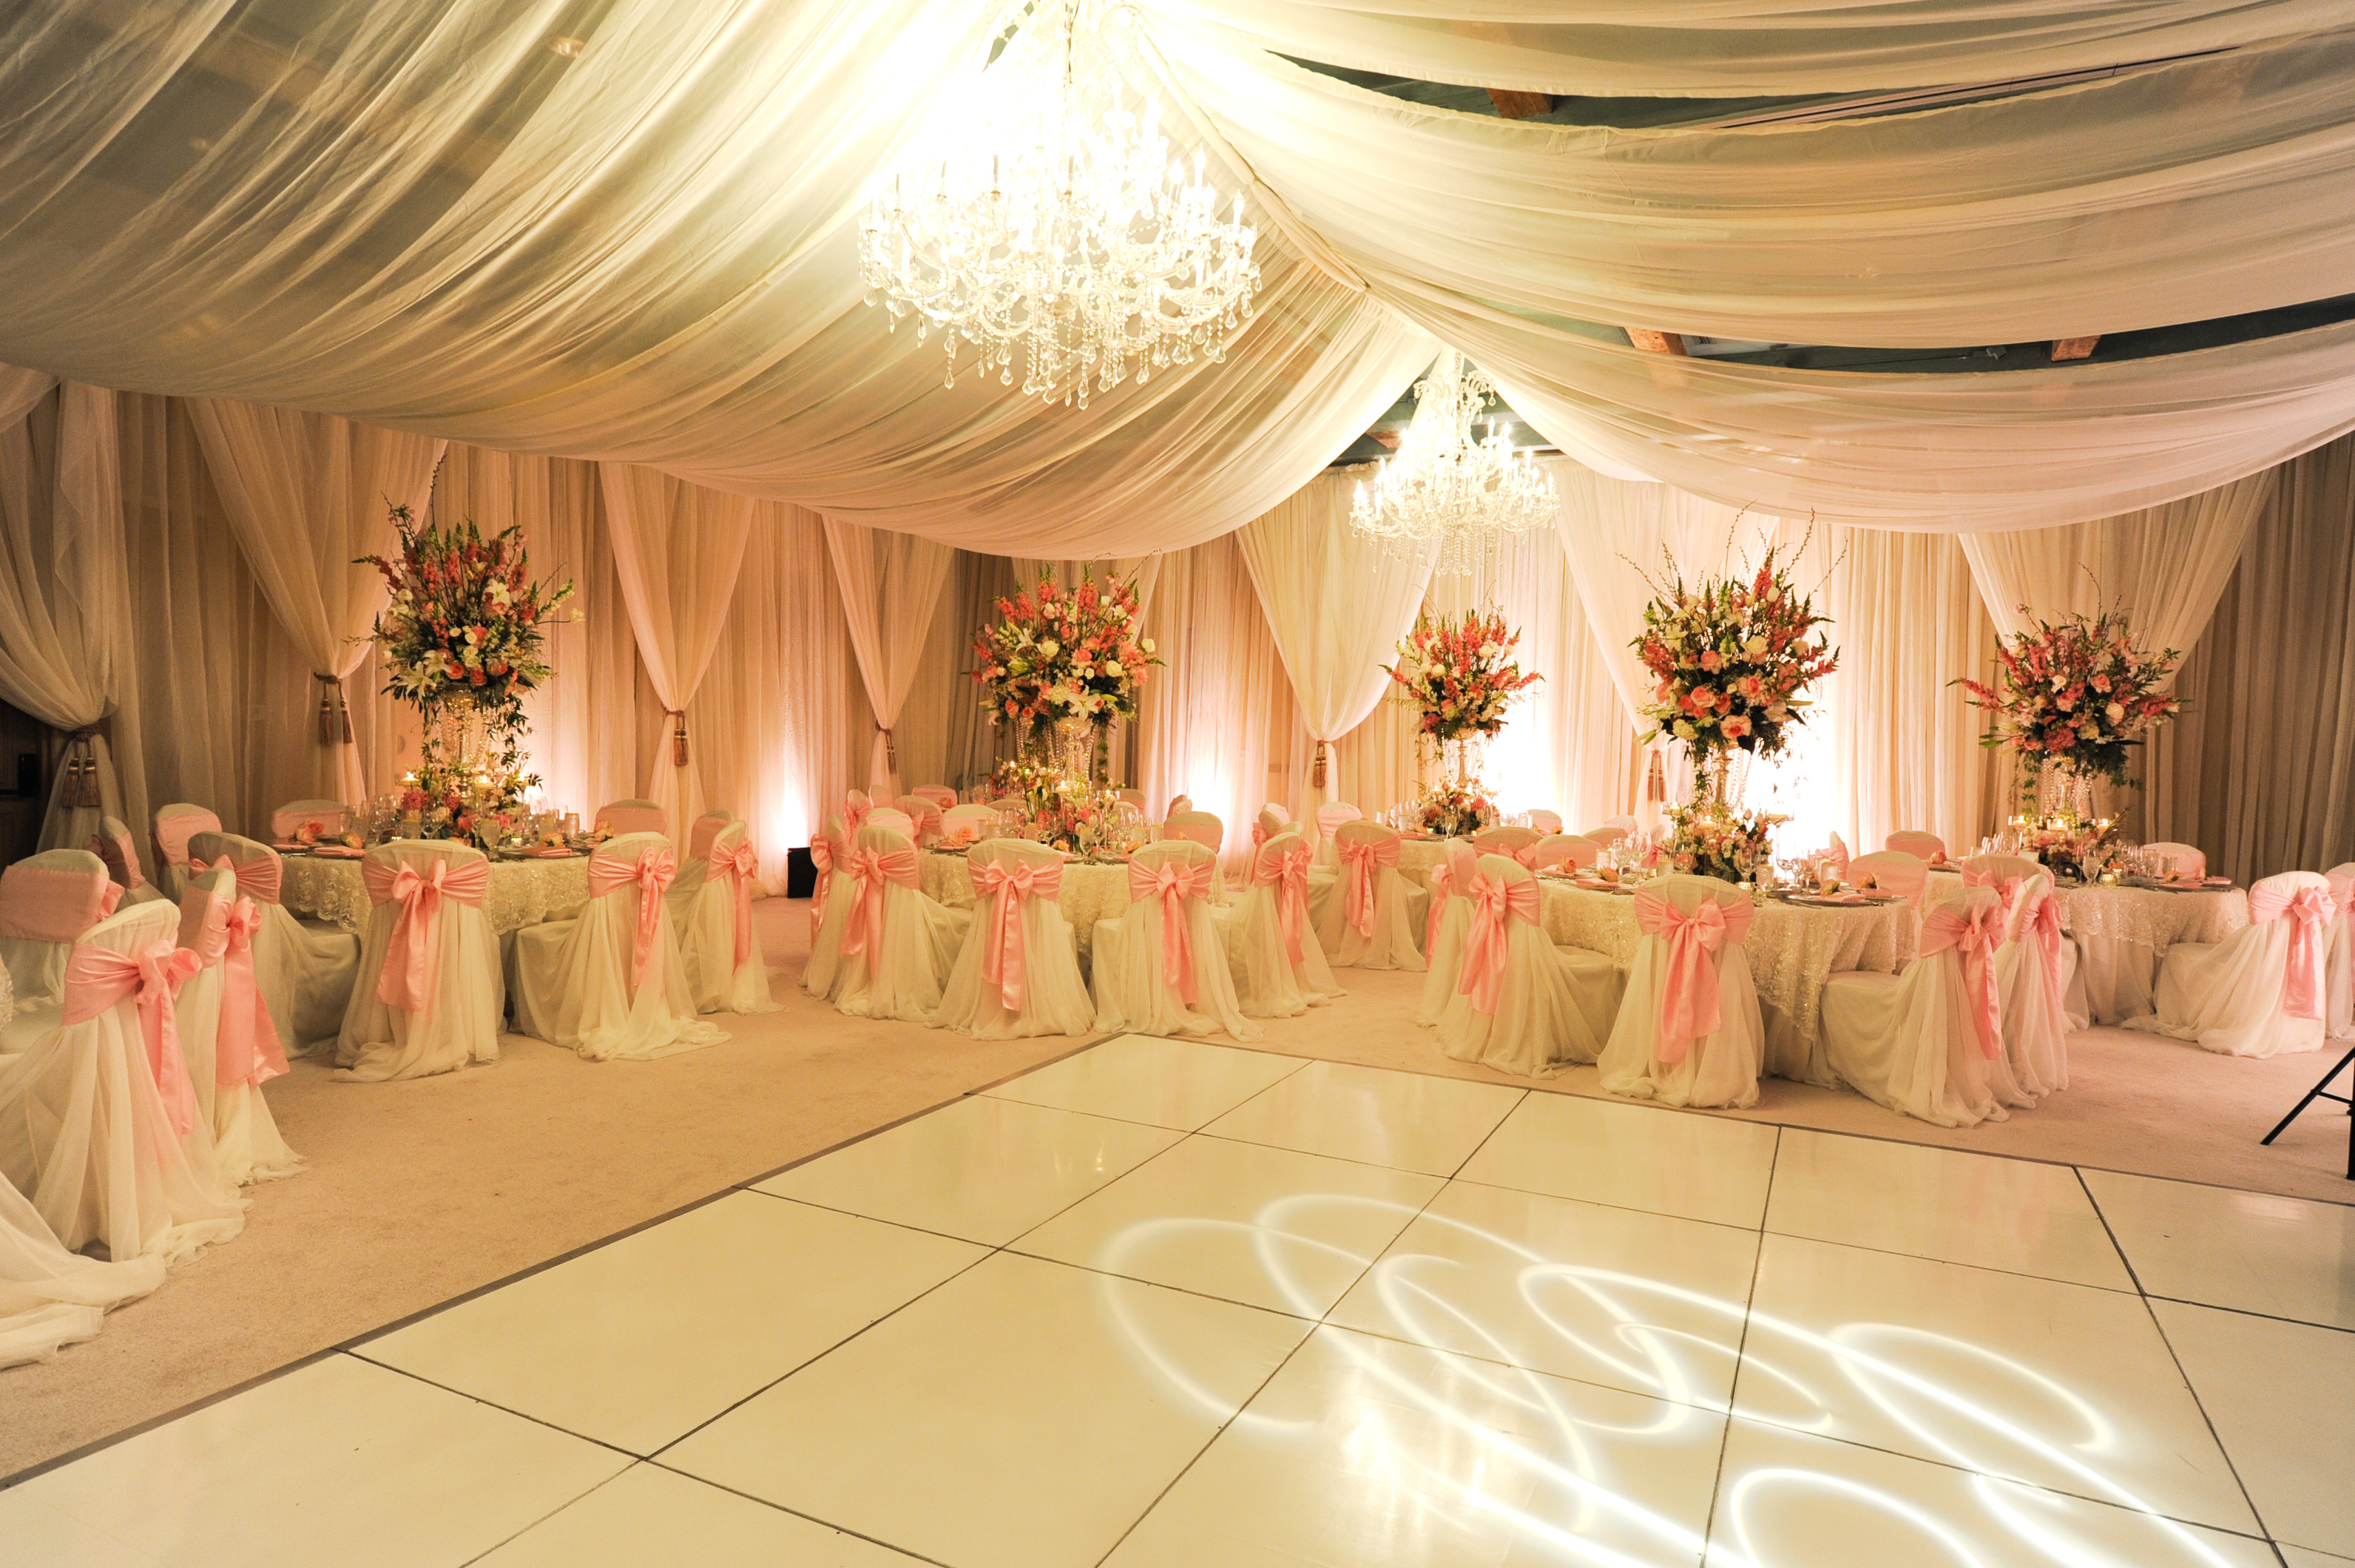 Show Stopper's Draping Can Transform A Space